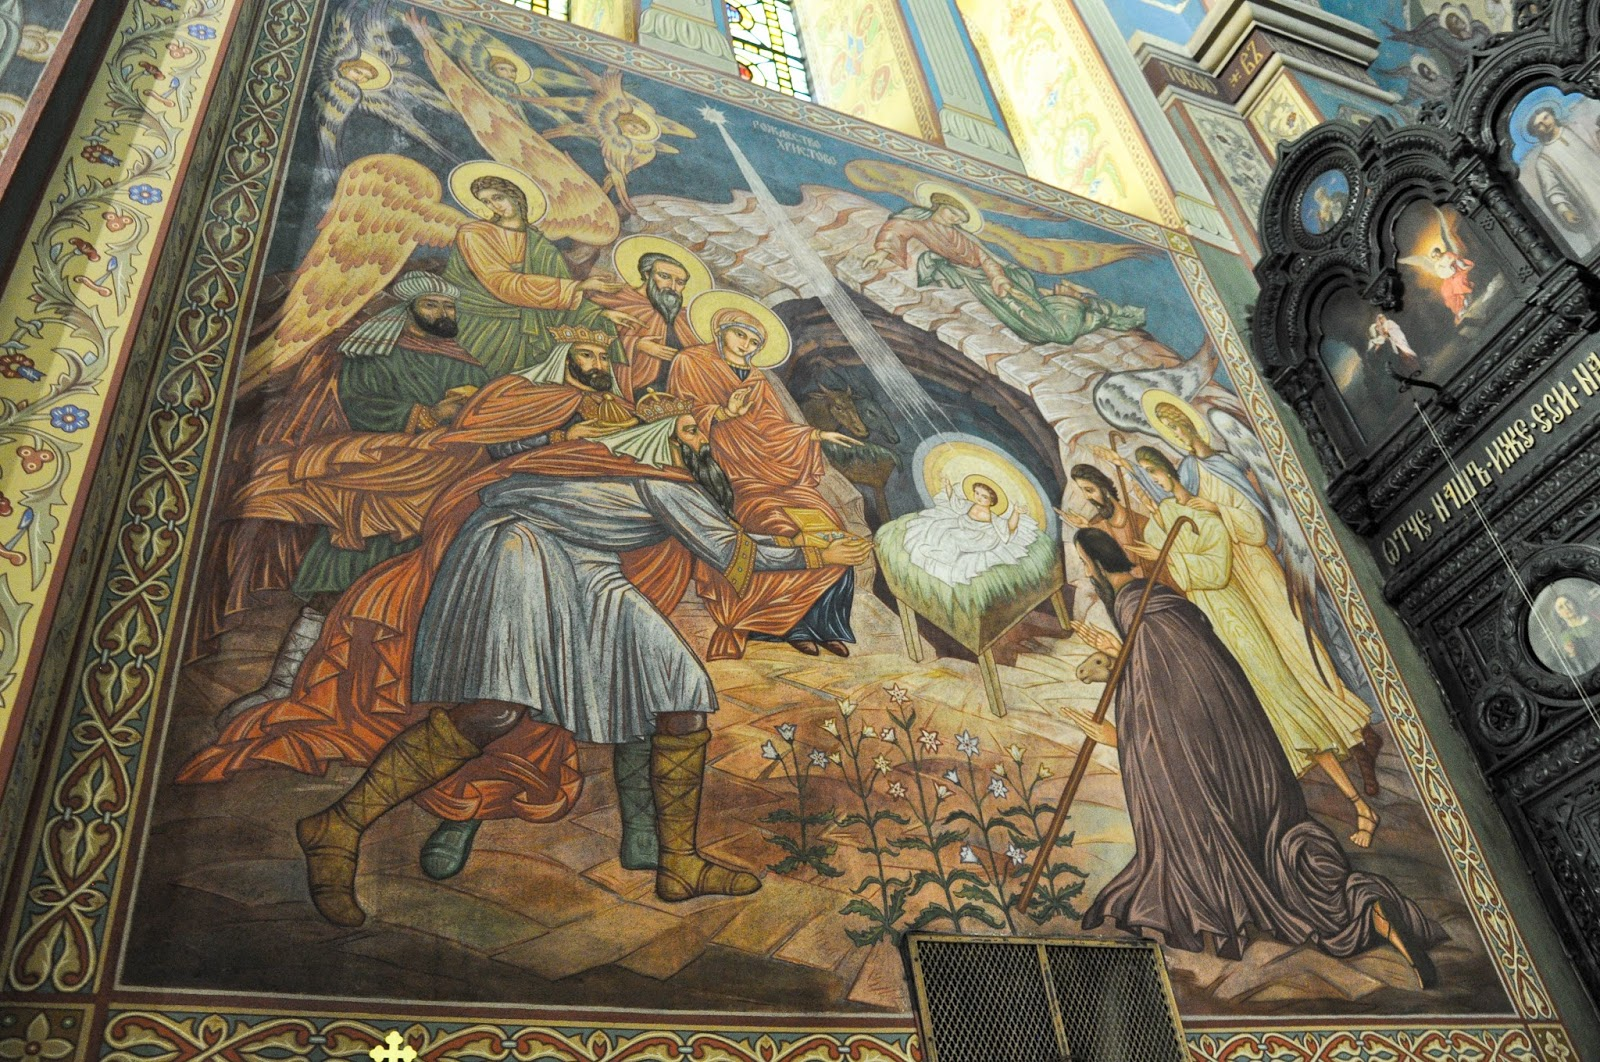 Detail of the frescoed walls, Dormition of the Mother of God Cathedral, Varna